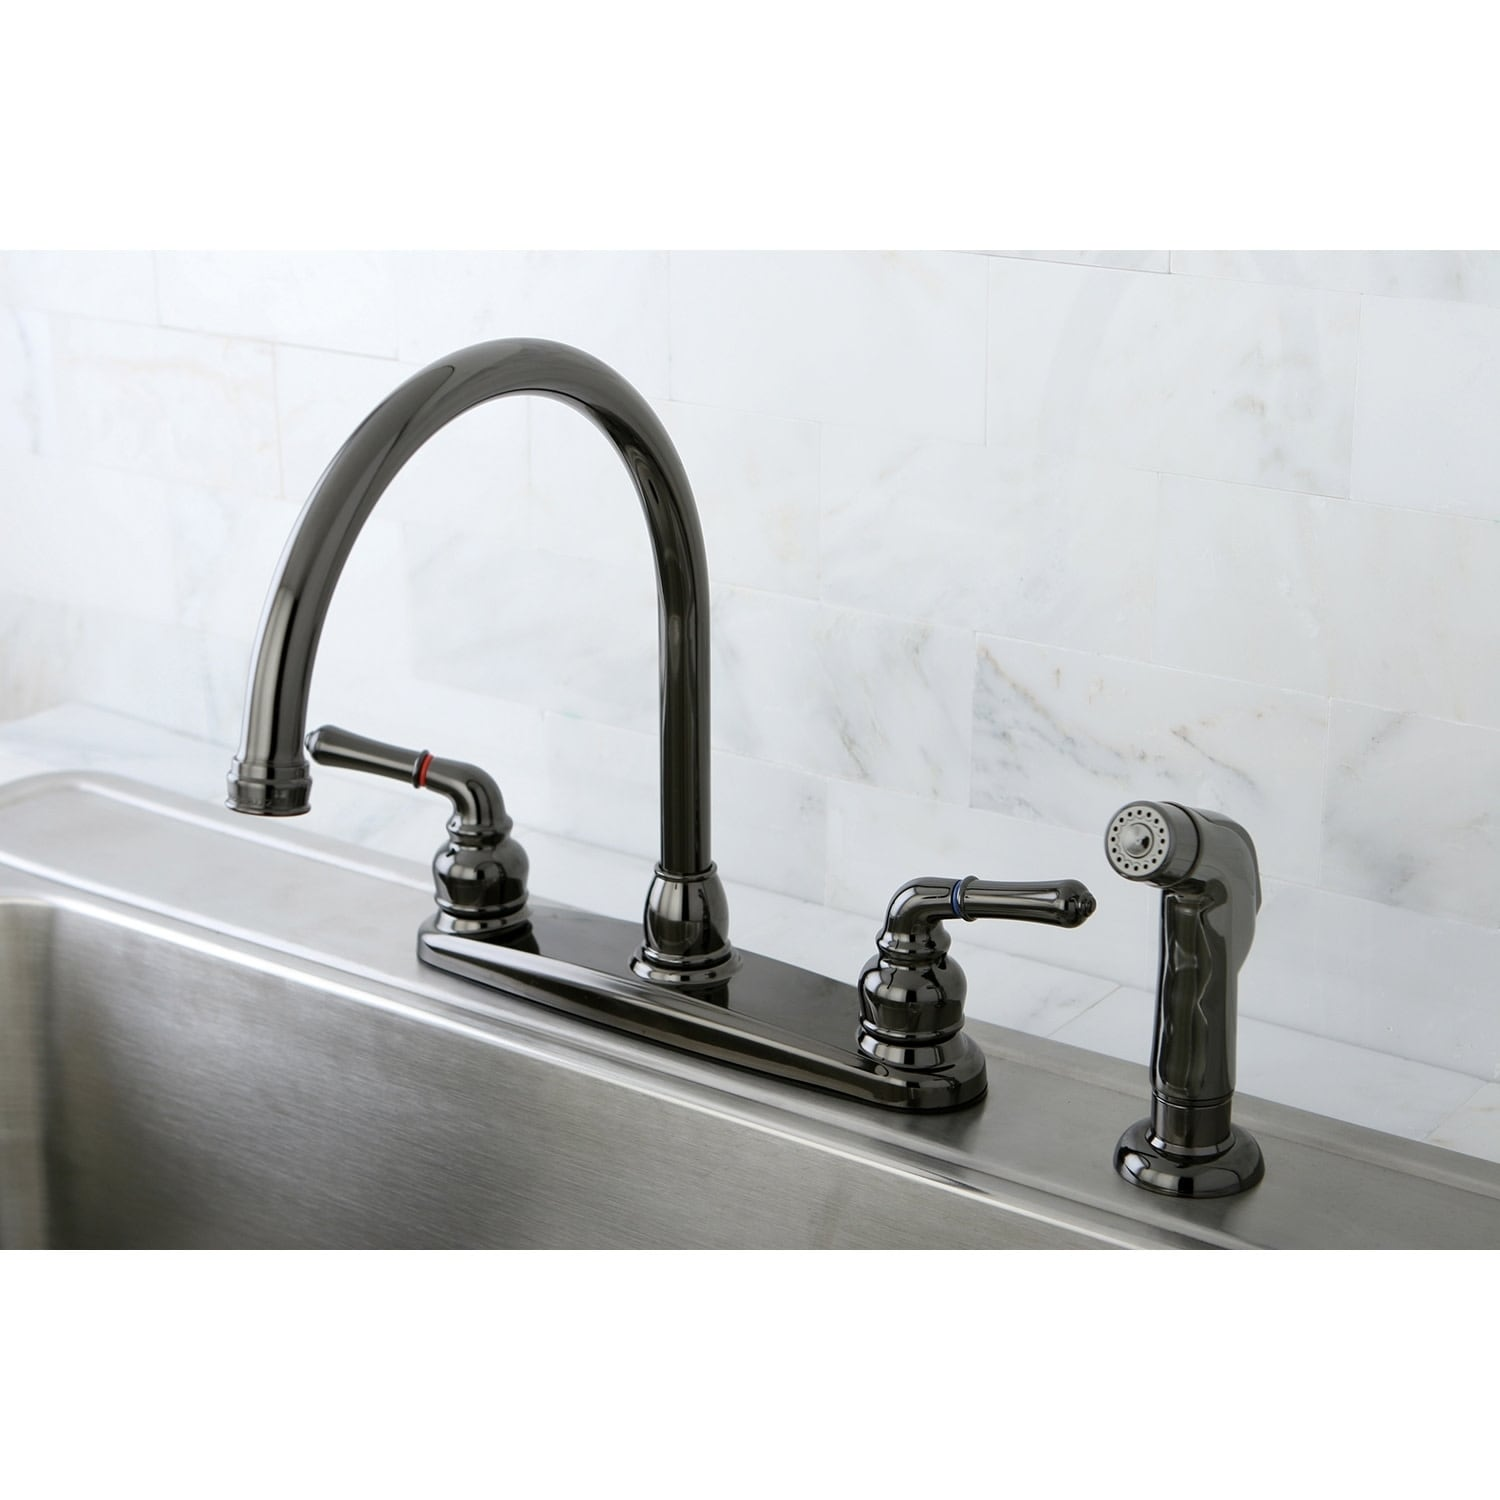 water onyx centerset kitchen faucet in black stainless steel